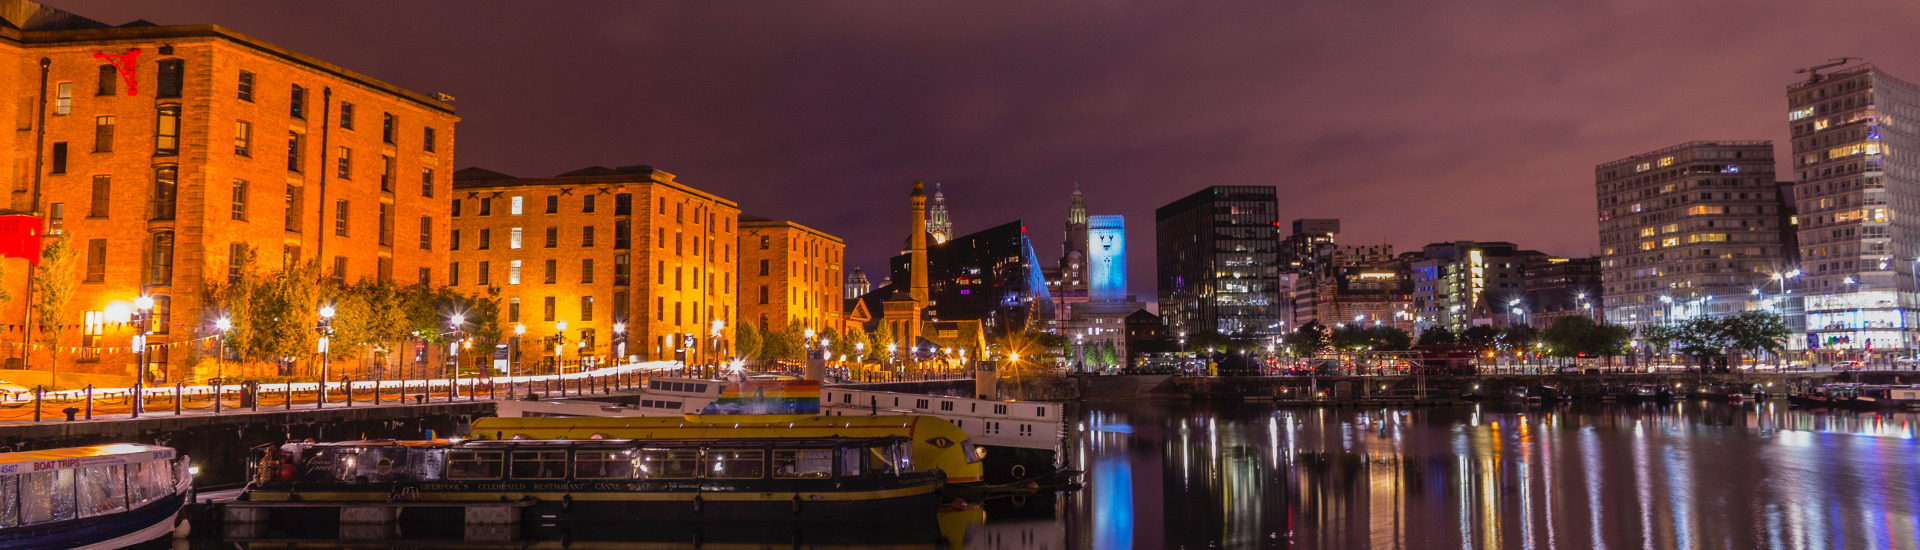 albert dock architecture bridge 550